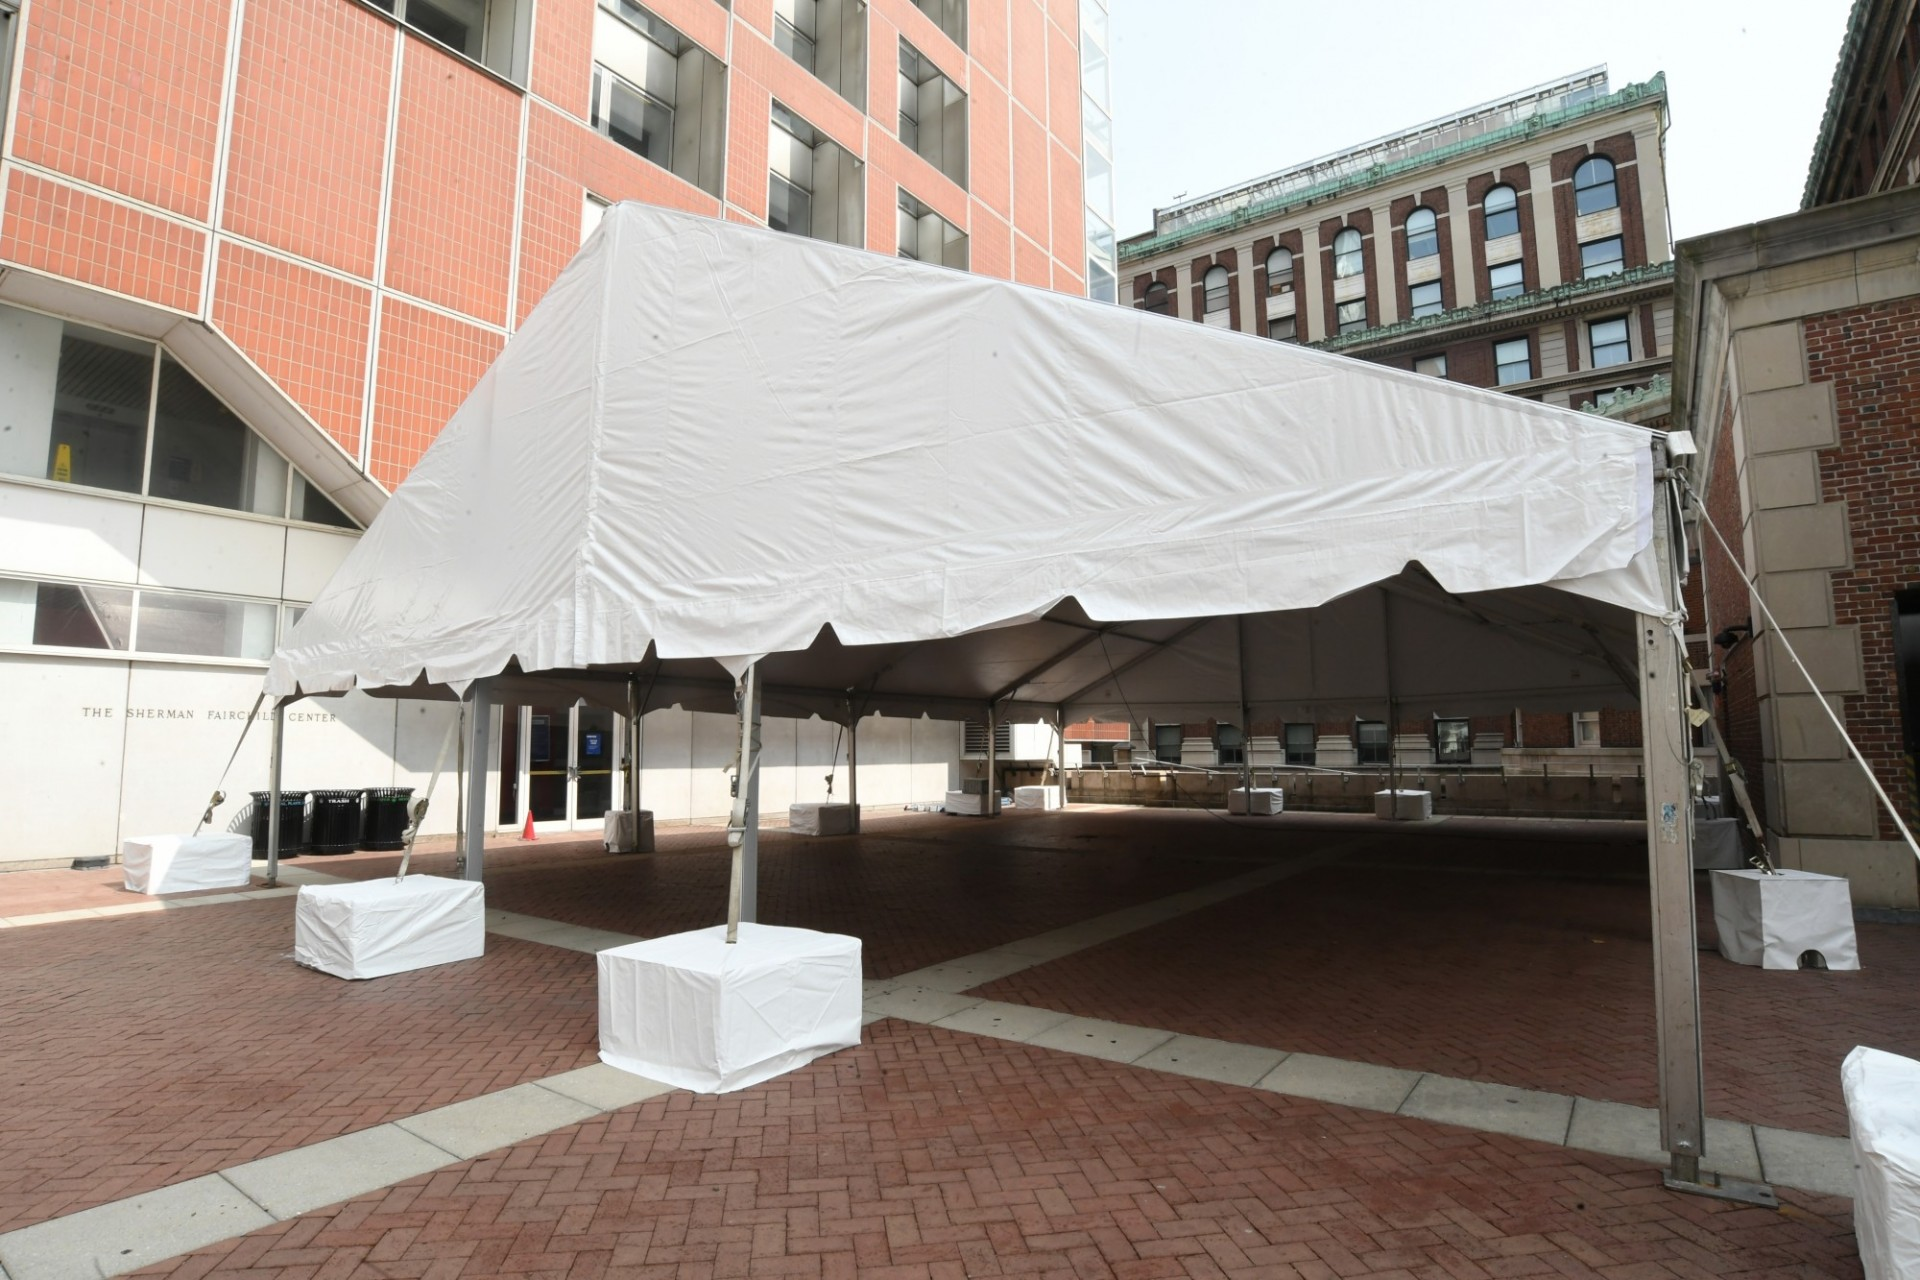 A large white tent is erected next to the Fairchild building.